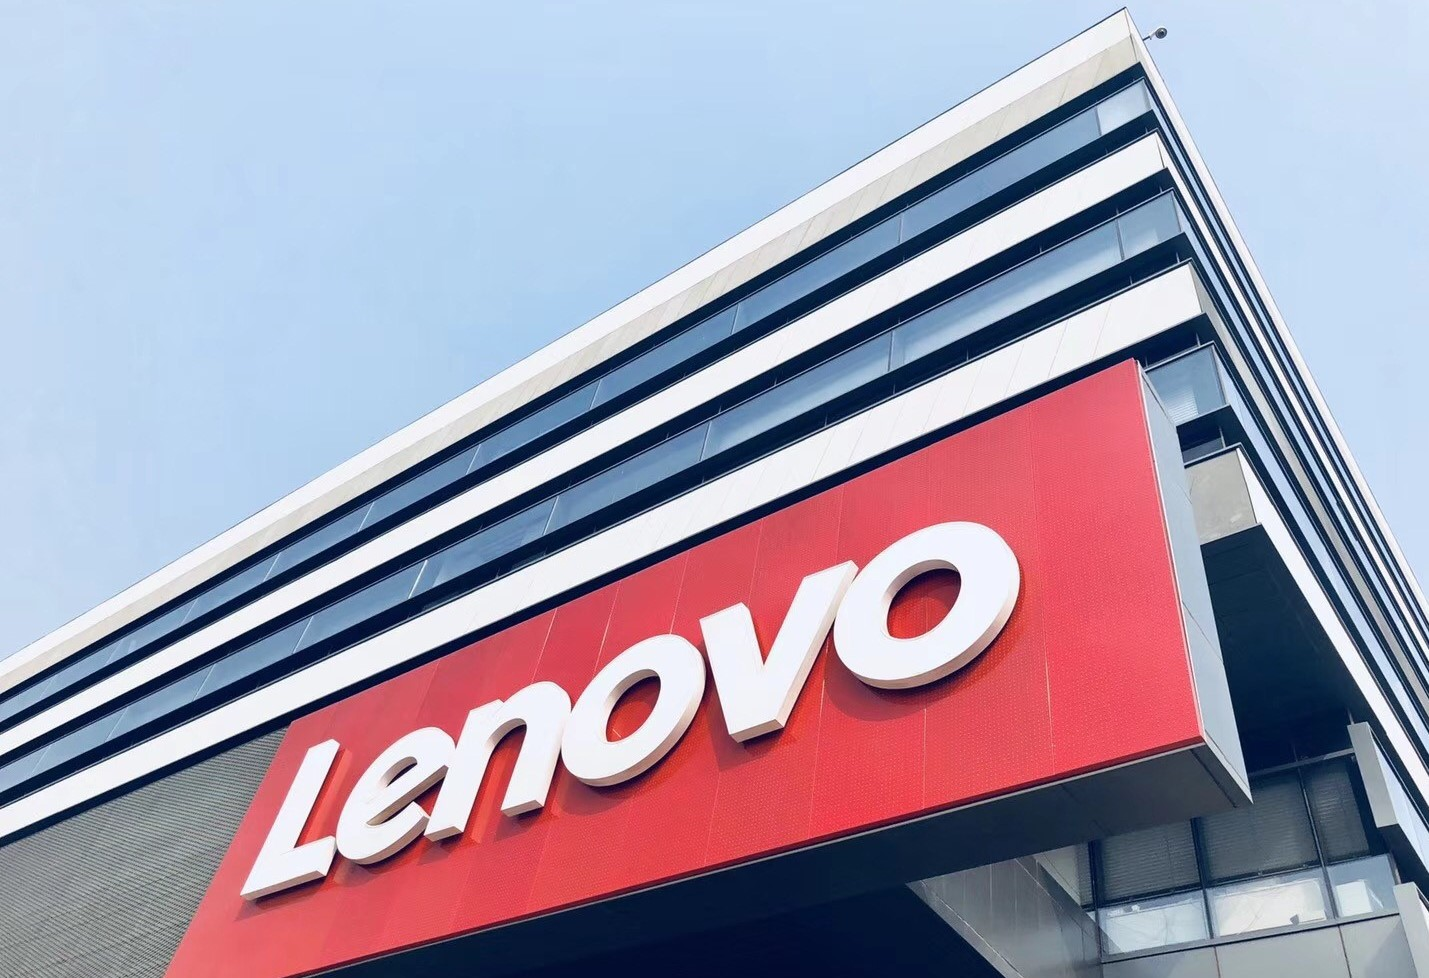 China's Lenovo Sets Up JV With California-Based Hybrid Cloud Data Services Provider NetApp